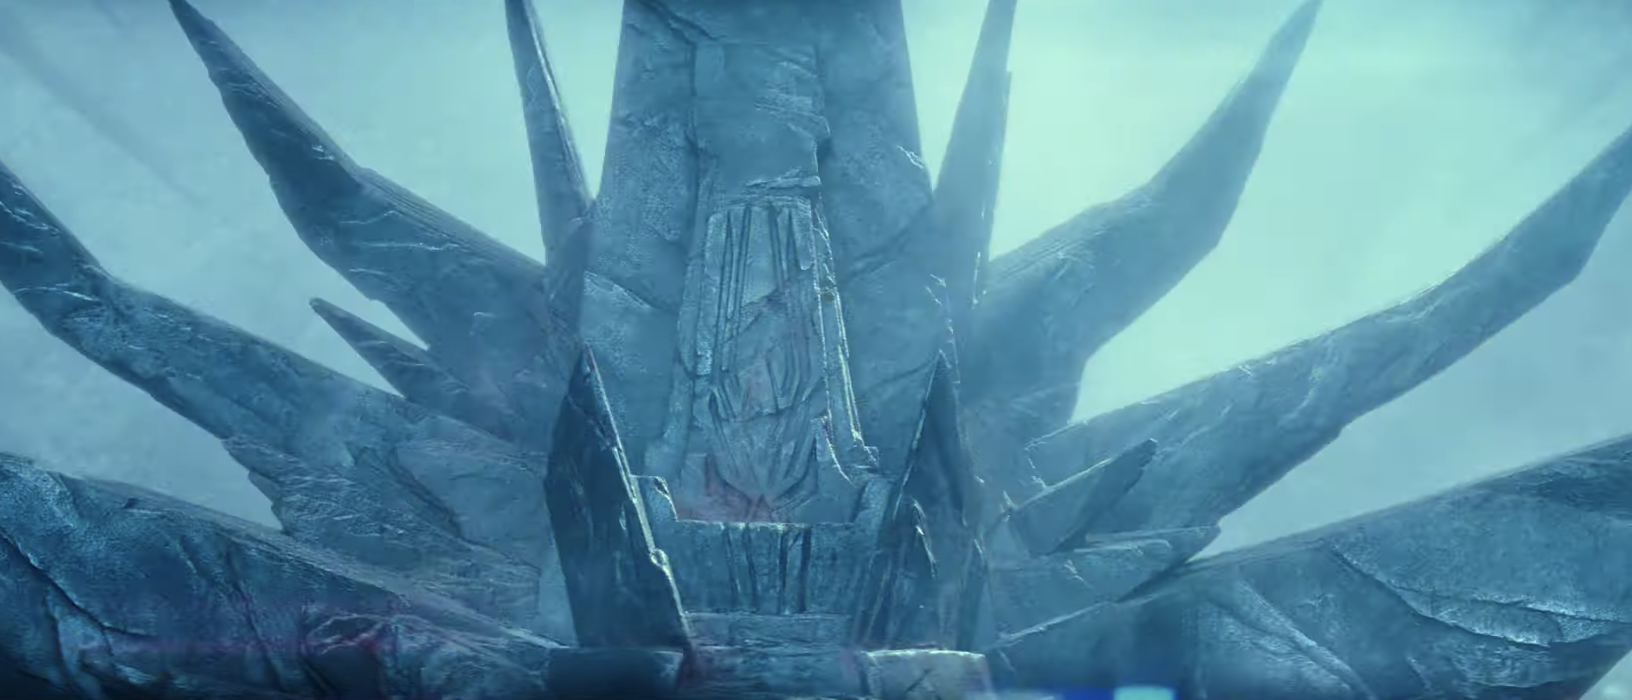 Palpatine's empty throne is briefly glimpsed in the final 'Star Wars: The Rise of Skywalker' trailer. (Photo: Lucasfilm)